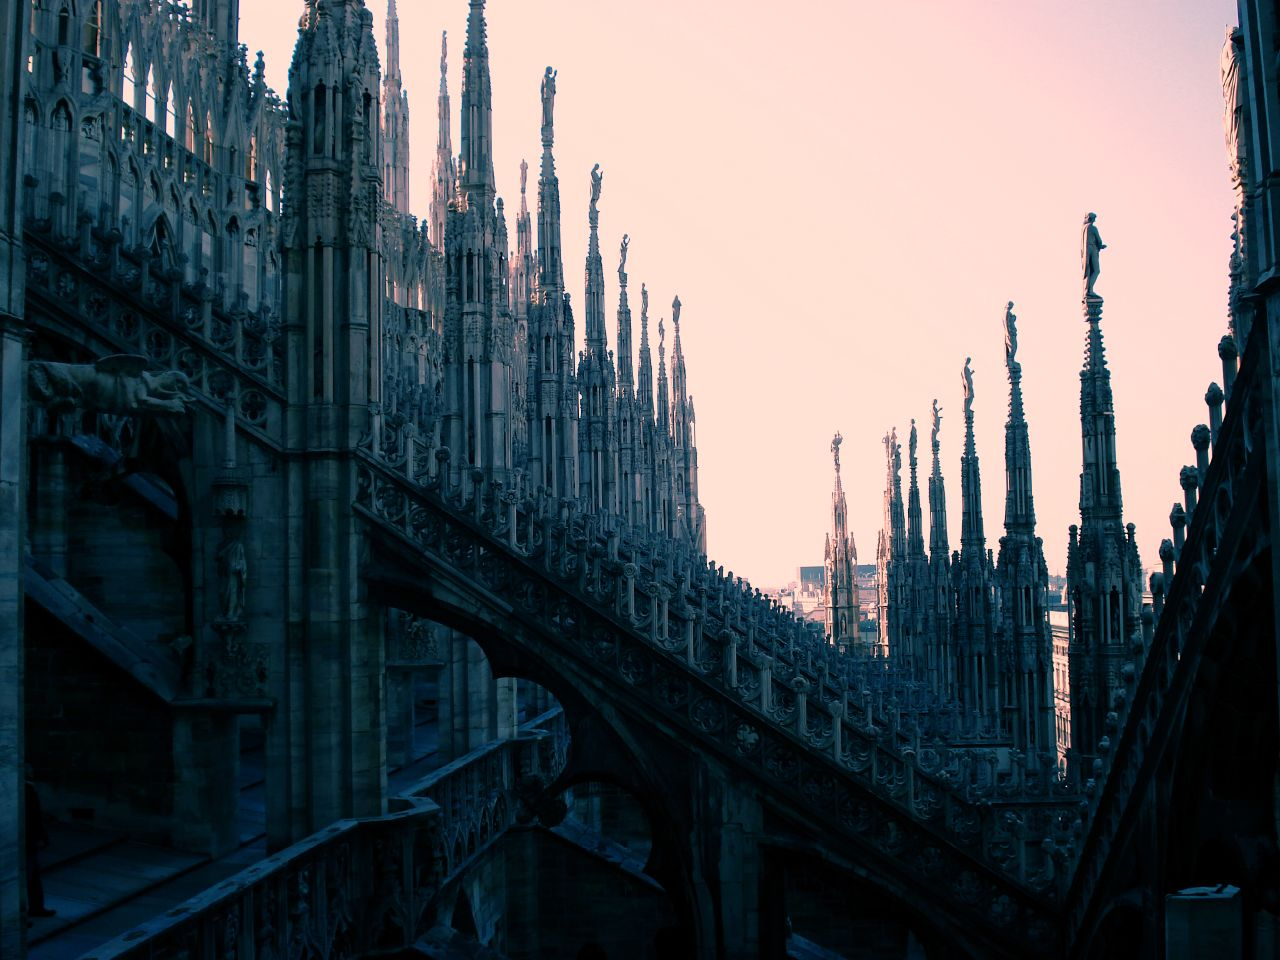 The Gothic architecture of the Duomo di Milano: flying buttresses and ornate towers in profile, lined up in ranks stretching into the distance. All is steeped in deep blue shadow against a delicate pink-peach sky.